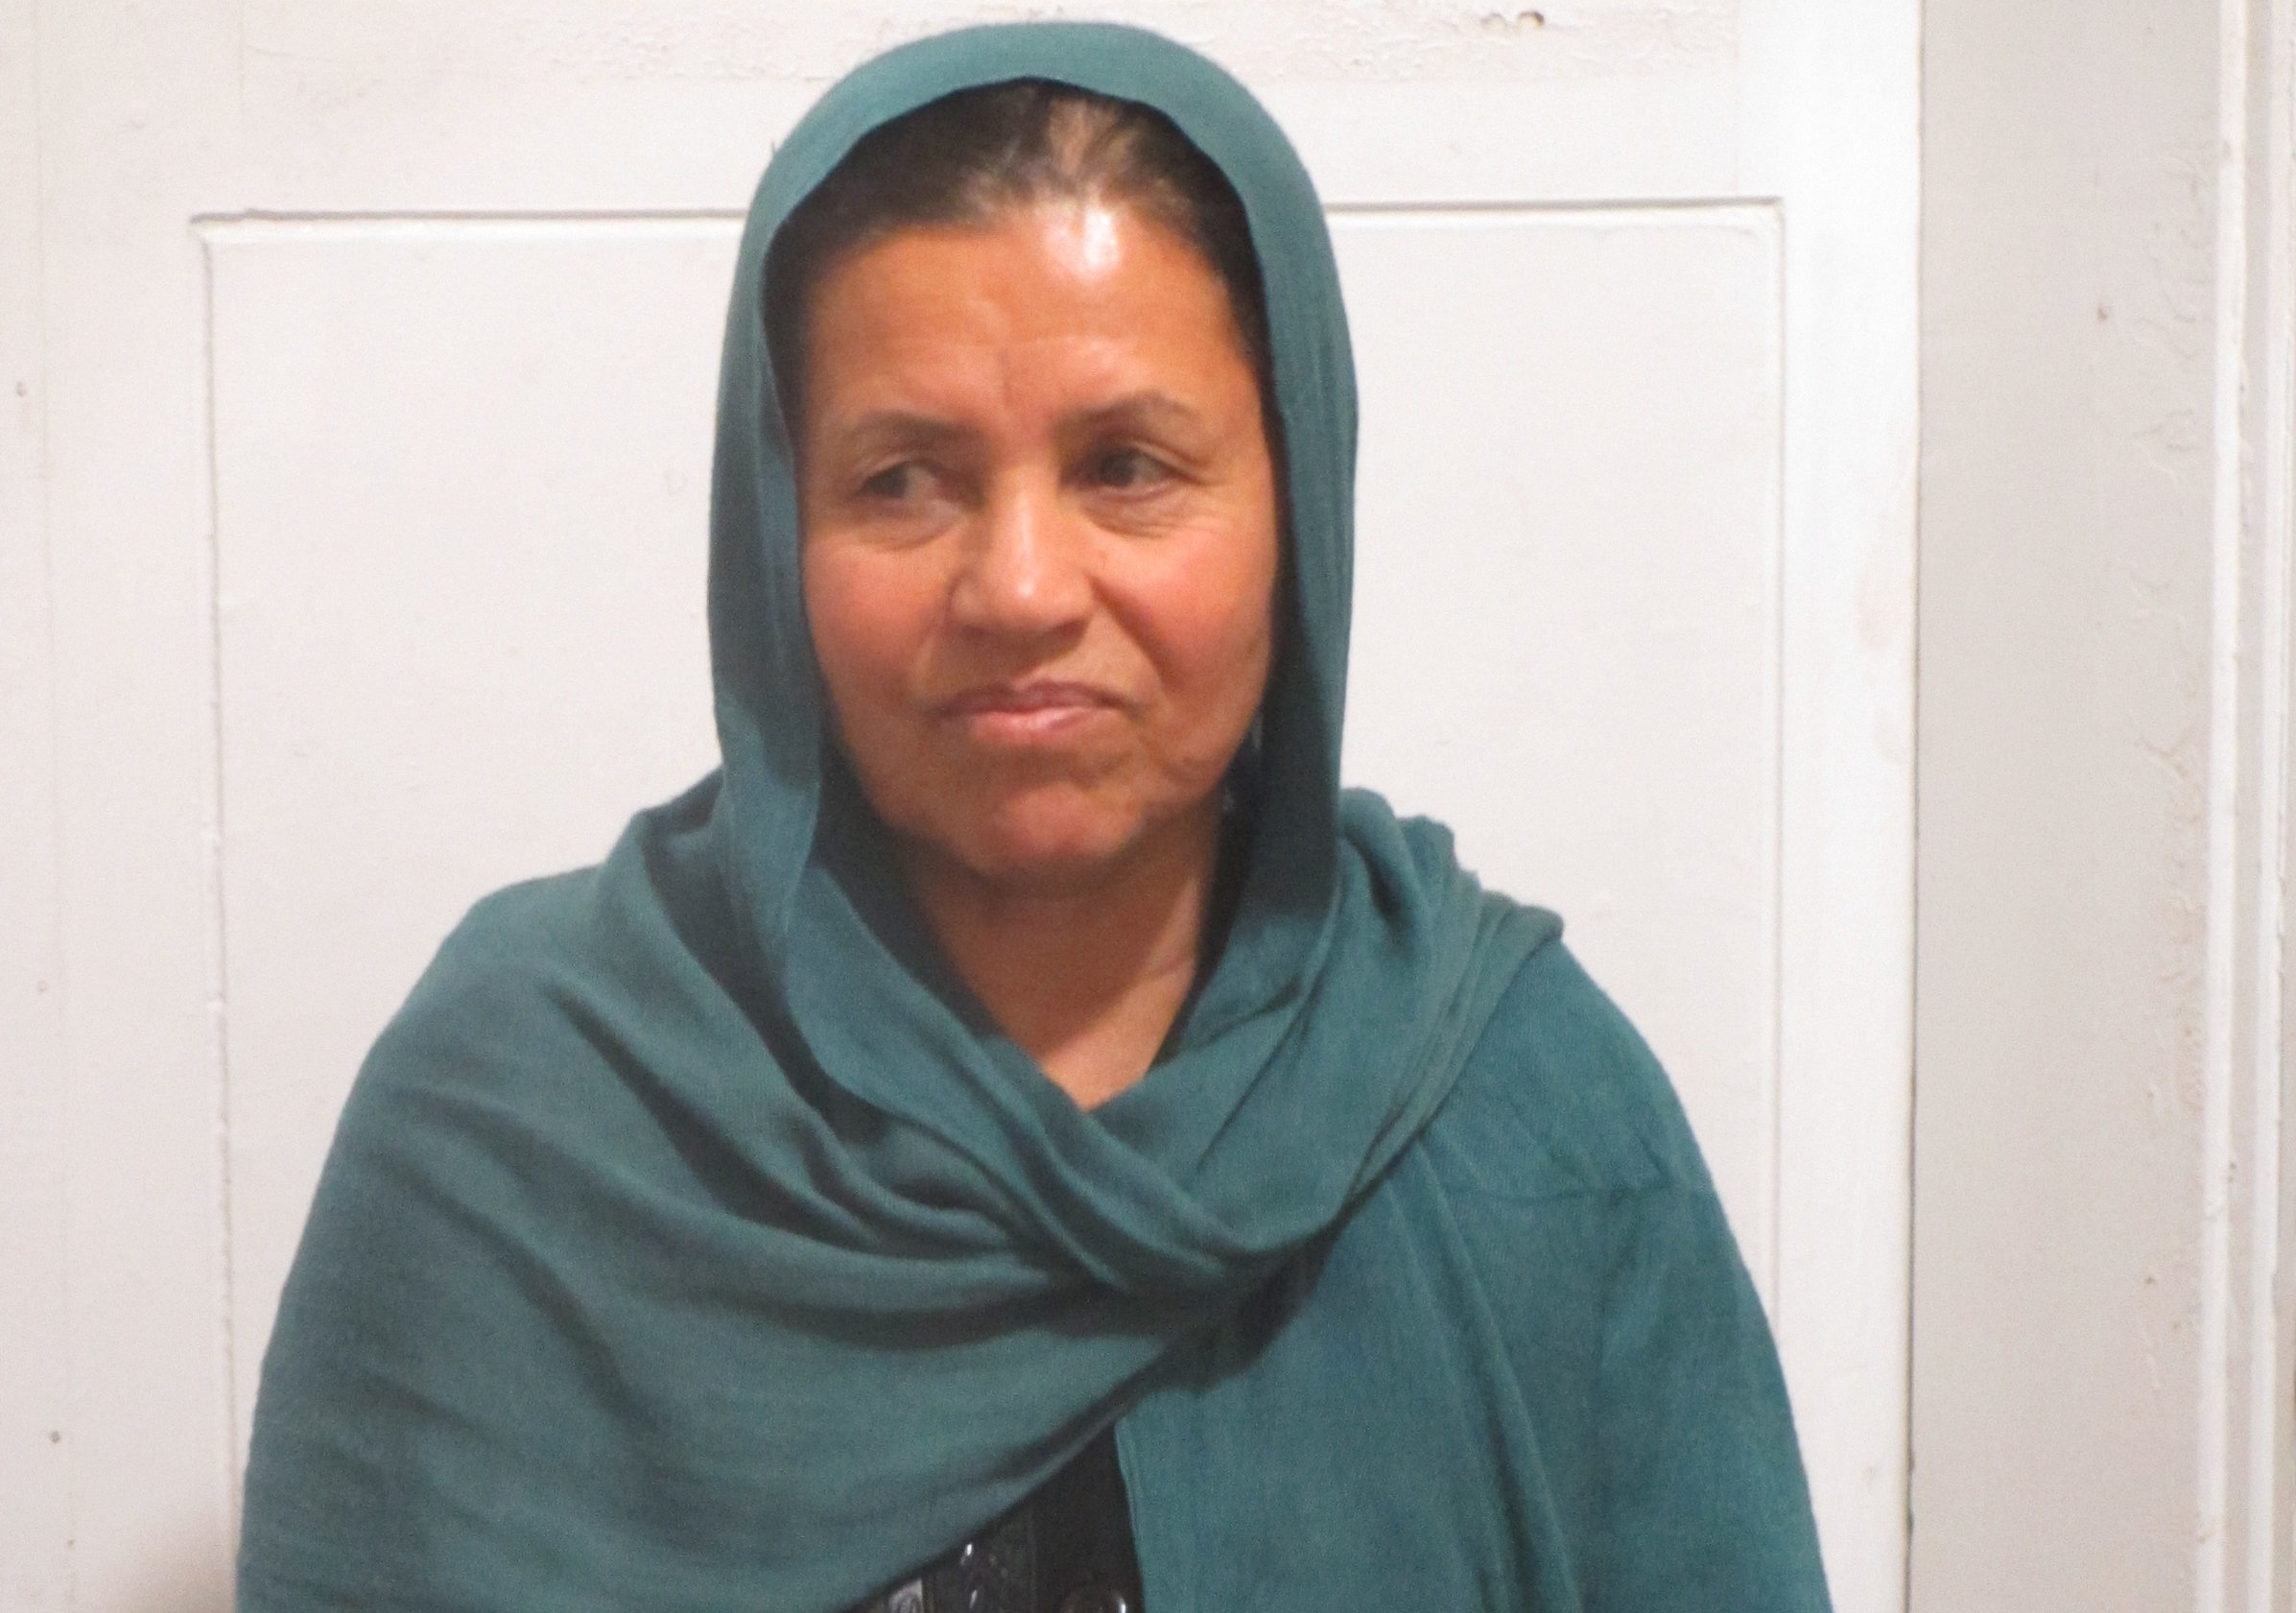 """""""Except God, we don't have anyone."""" The Afghan woman pictured here told RI about her feeling of isolation in Turkey and how she, like many refugees, carries traumatic experiences with her. She lost her husband and son in Afghanistan and told RI that now she sometimes sleeps in front of the door to their room feeling she must protect her remaining daughters."""